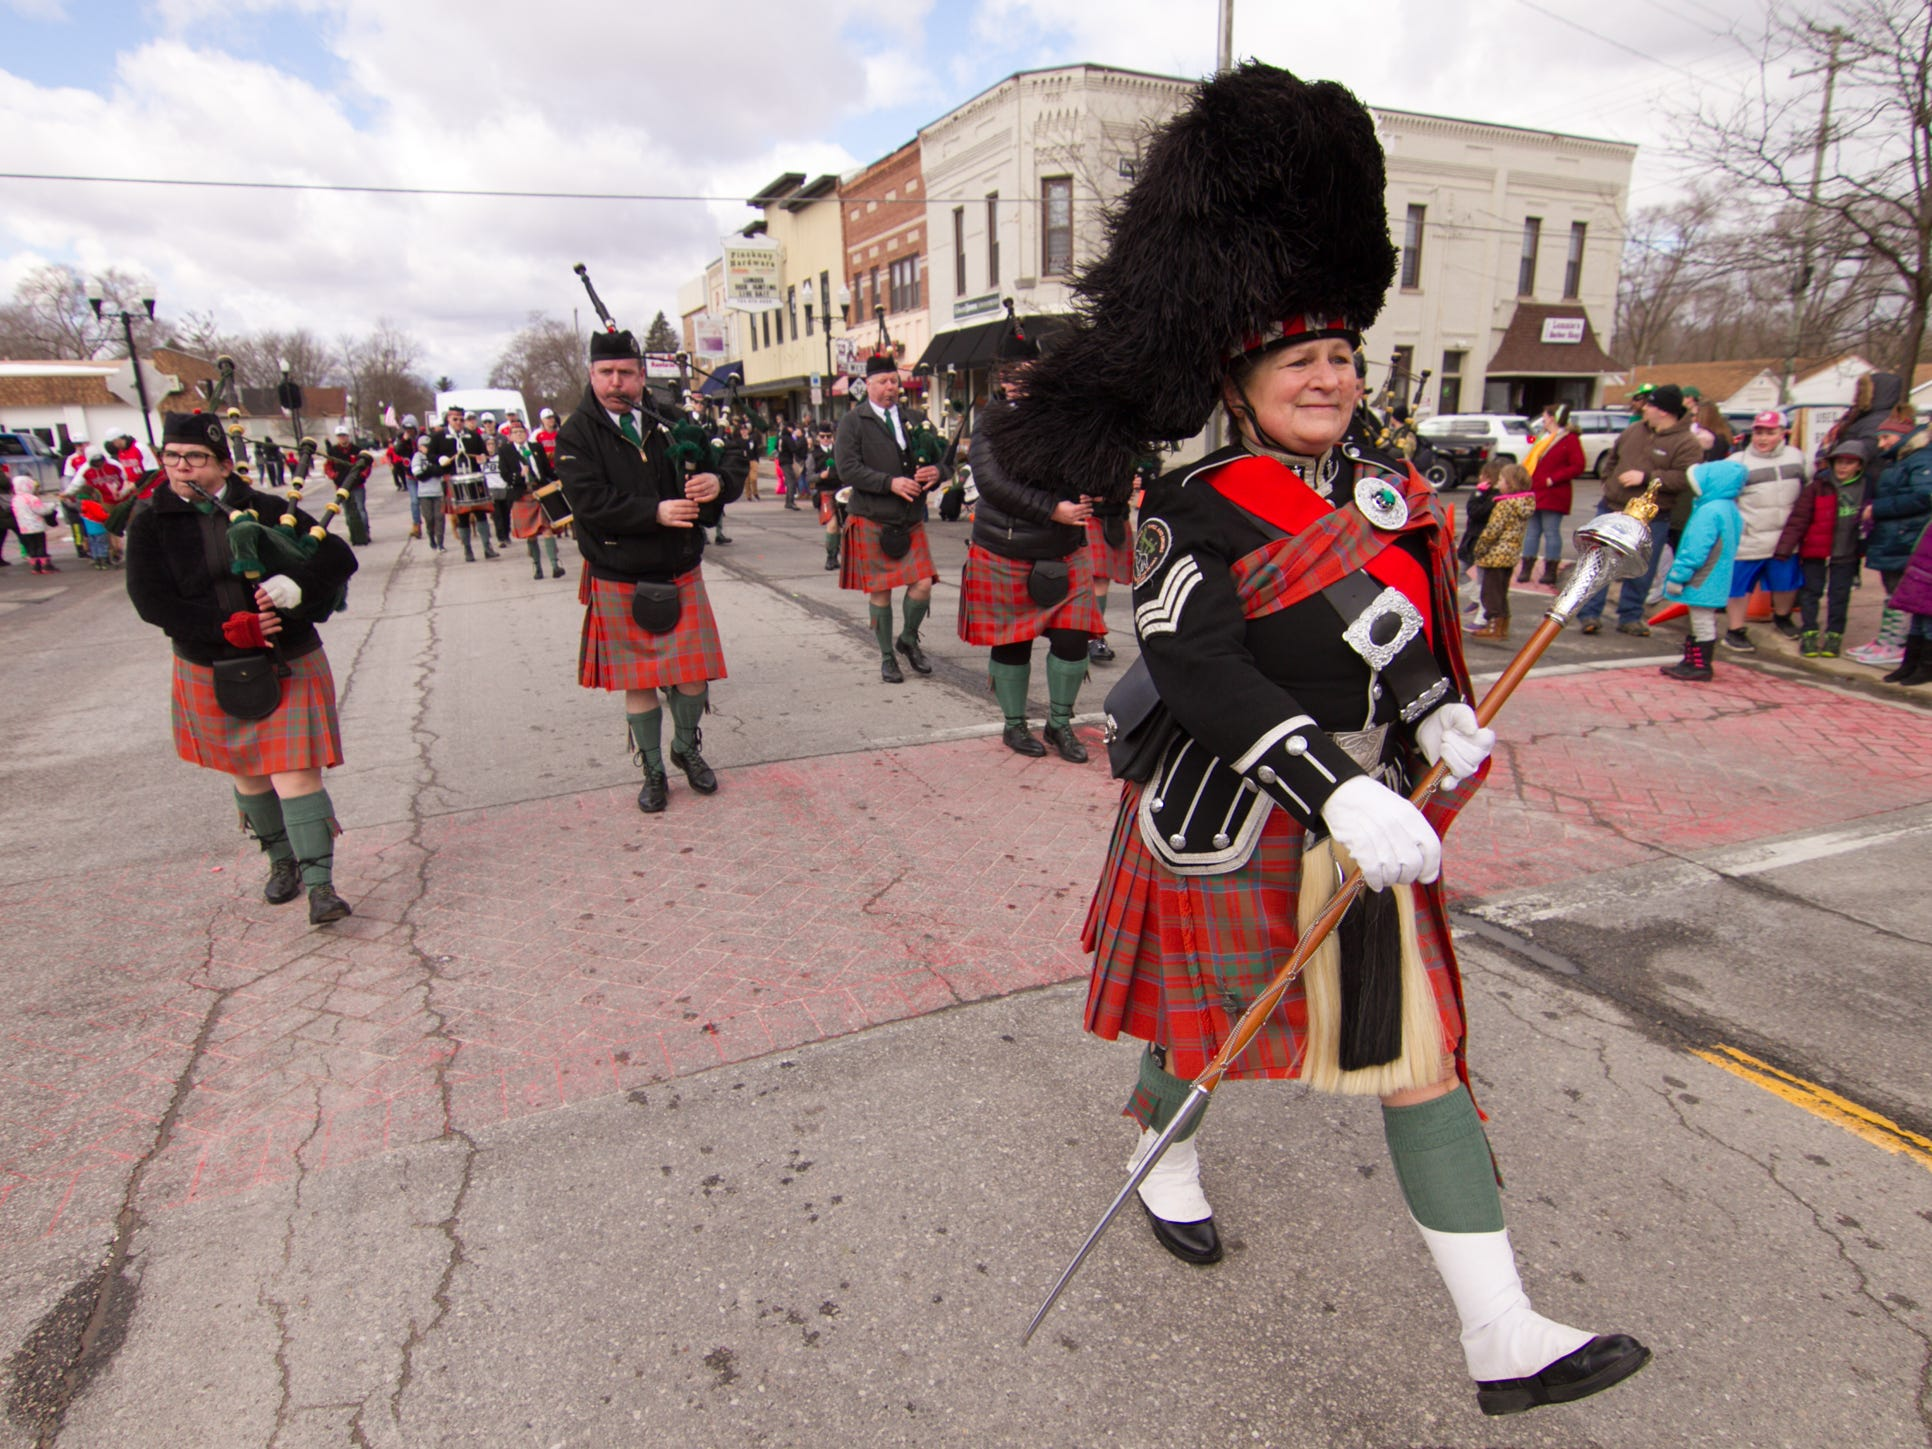 Christy Haradean, a member of the honor guard of the Michigan Scottish Pipes and Drums band, leads the group in the St. Patrick's Day parade Saturday, March 16, 2019.